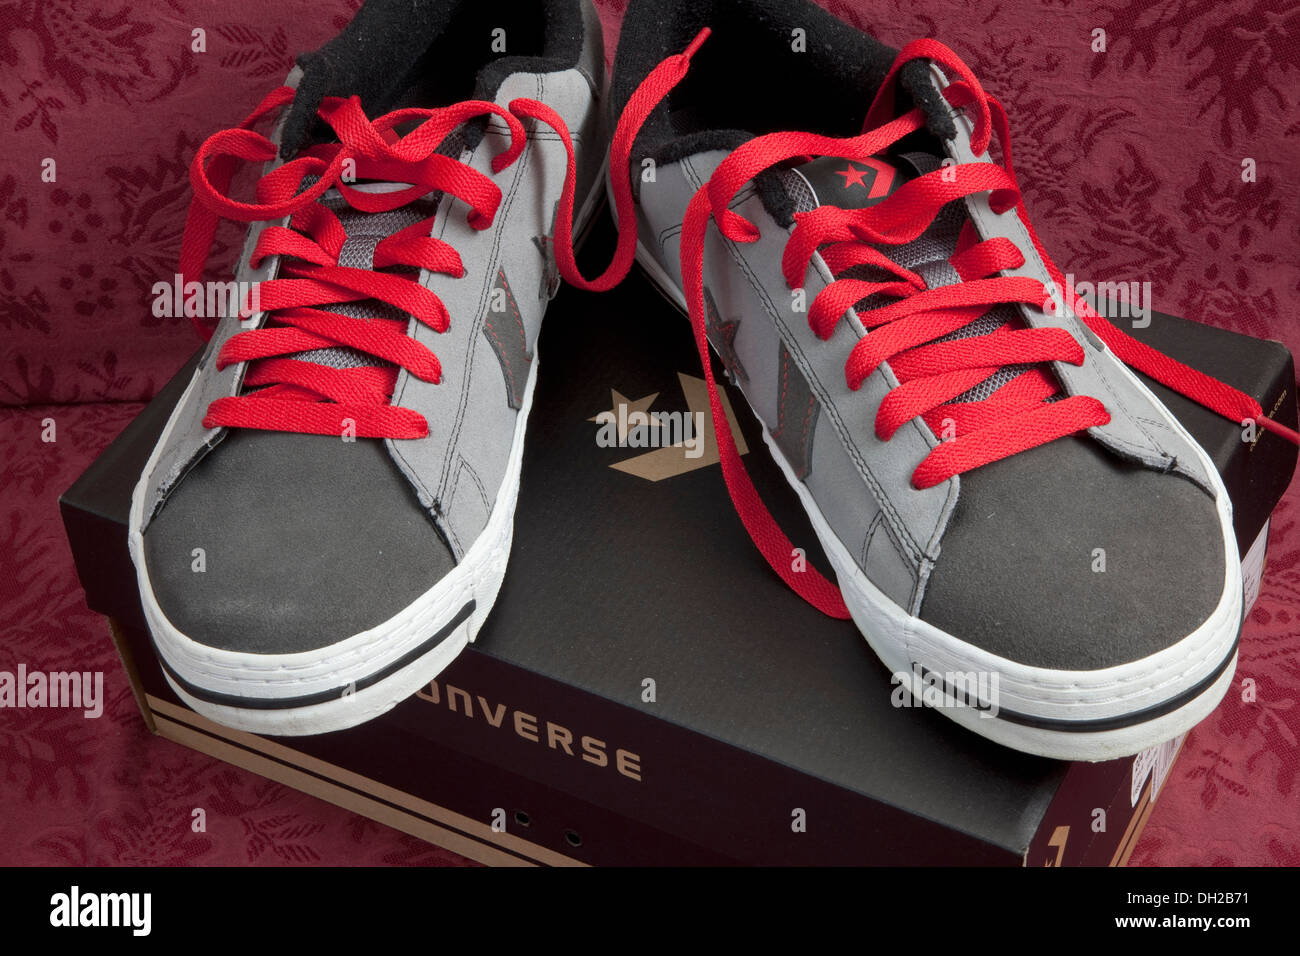 dc5d3649a62e Photographers Converse All Star shoes with red laces on original box. St  Paul Minnesota MN